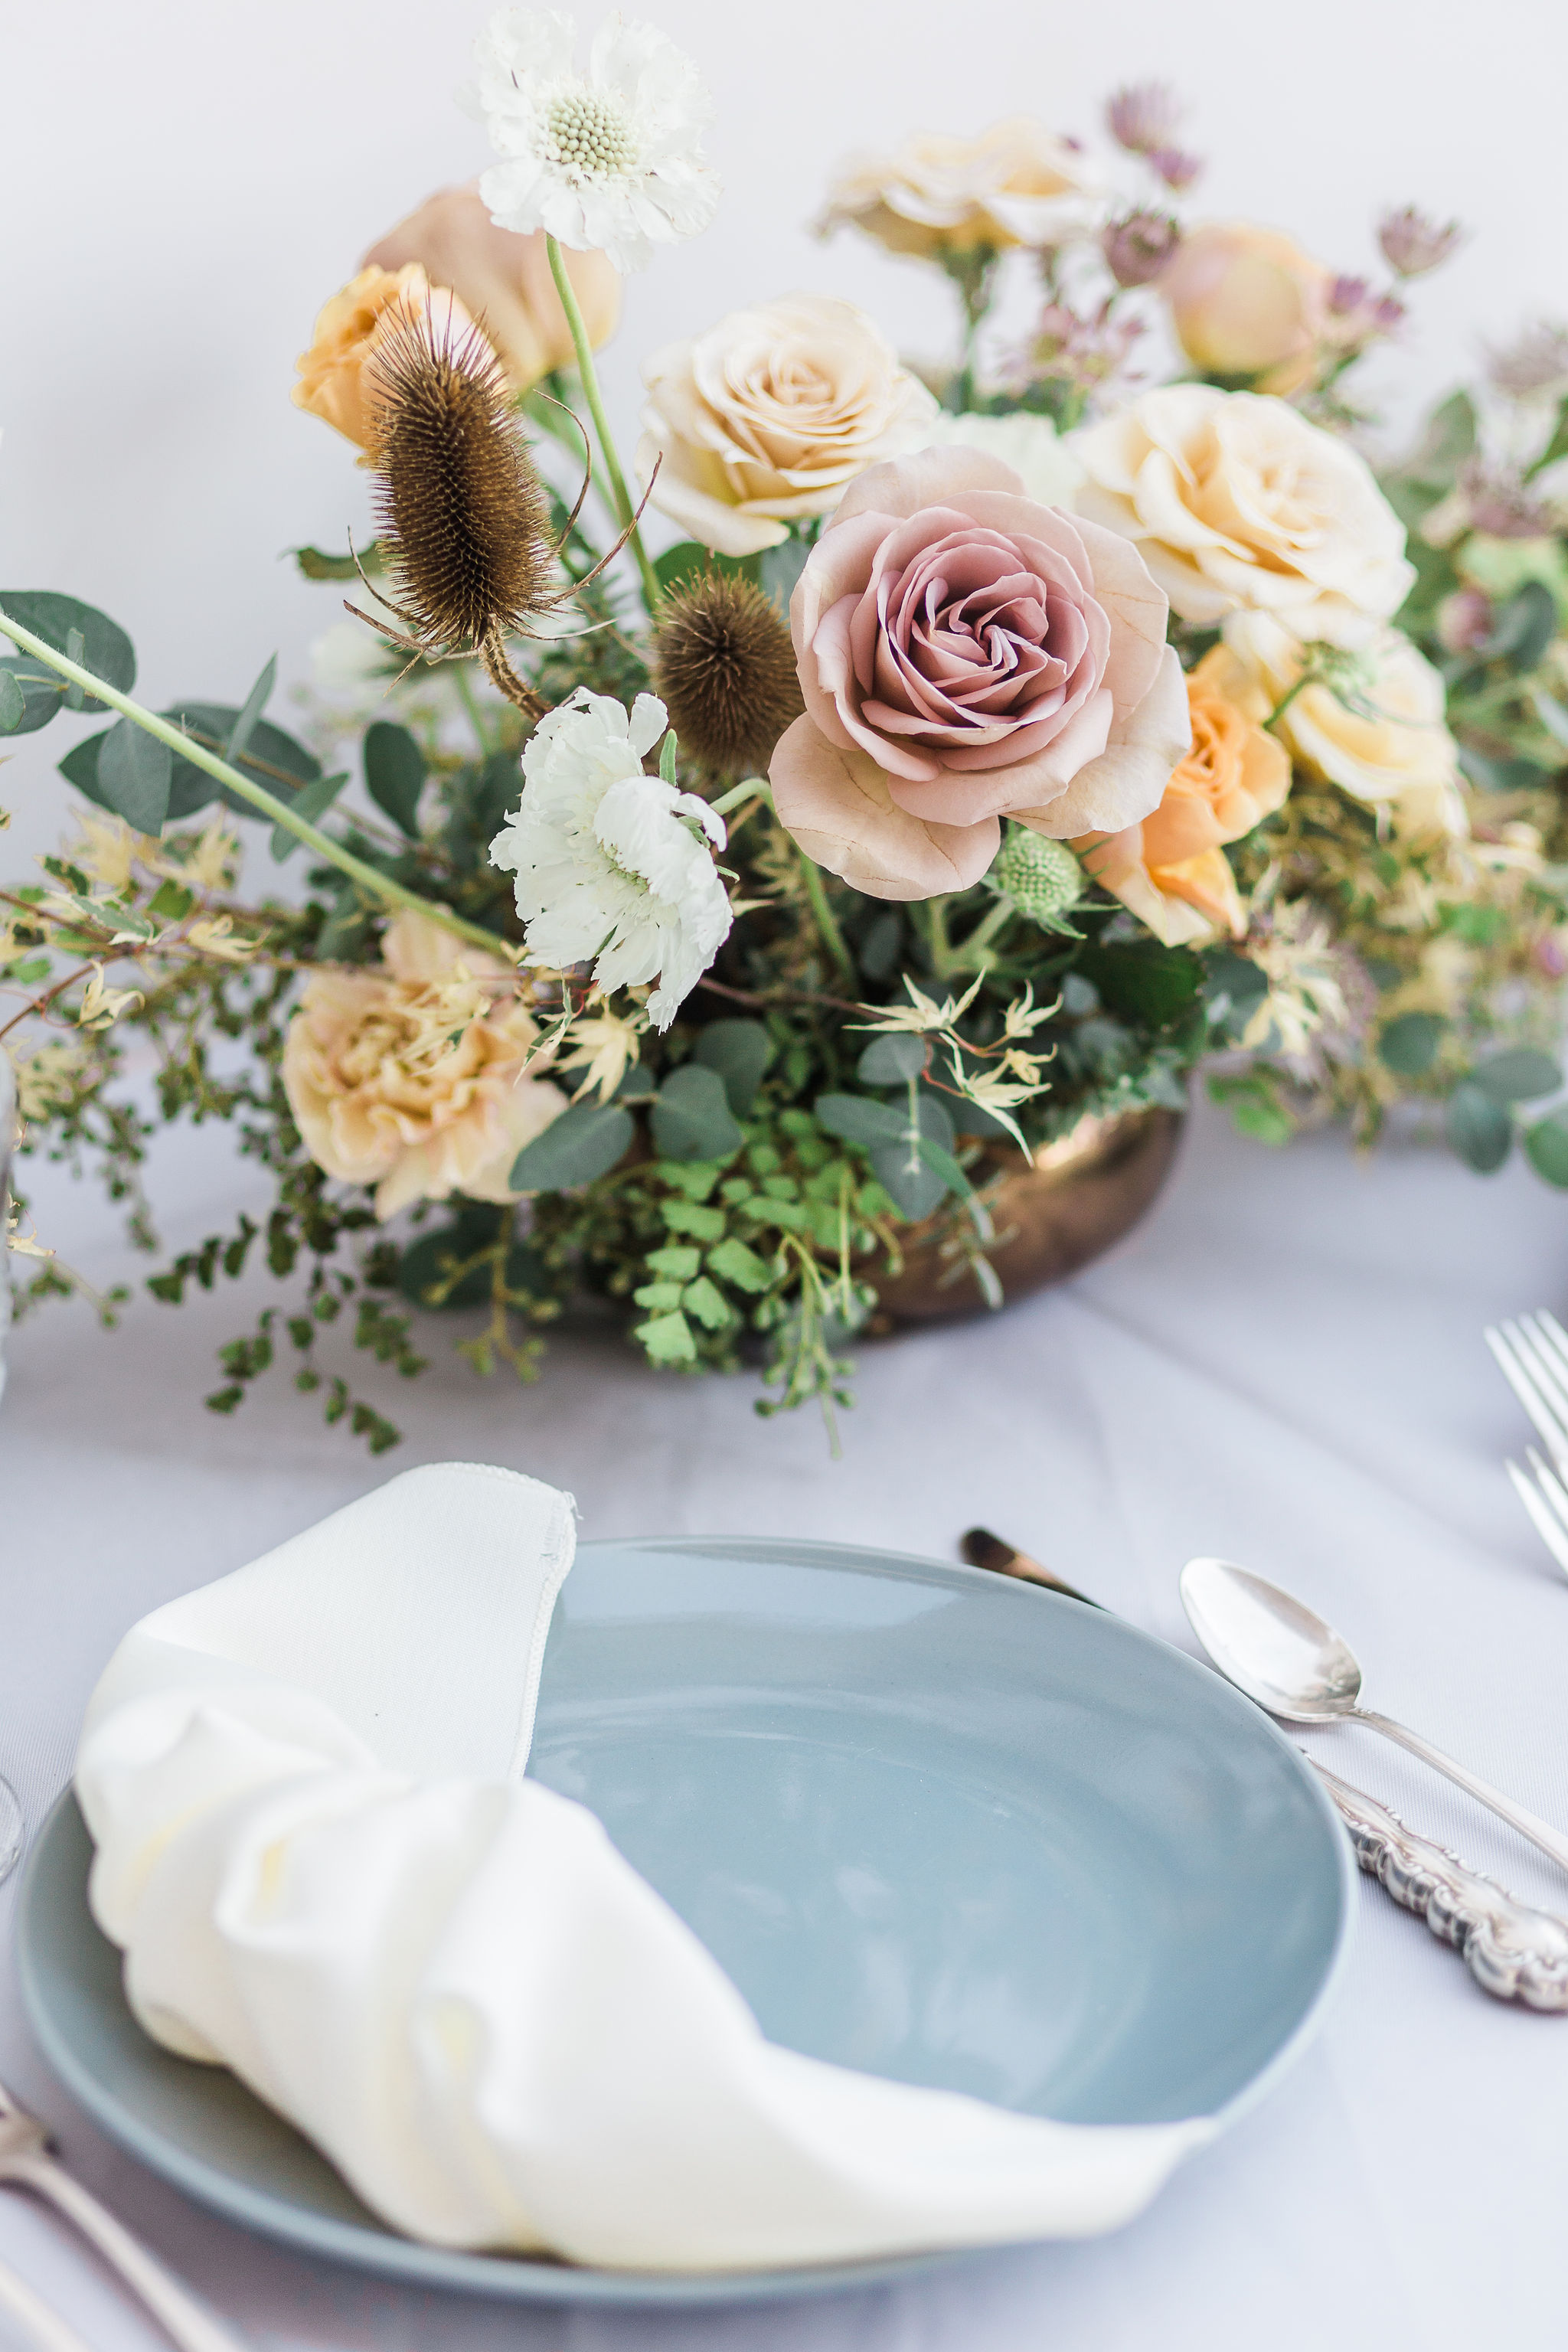 Georgia-Ruth-Photography-Flat-Lays-Table-Details-145.jpg